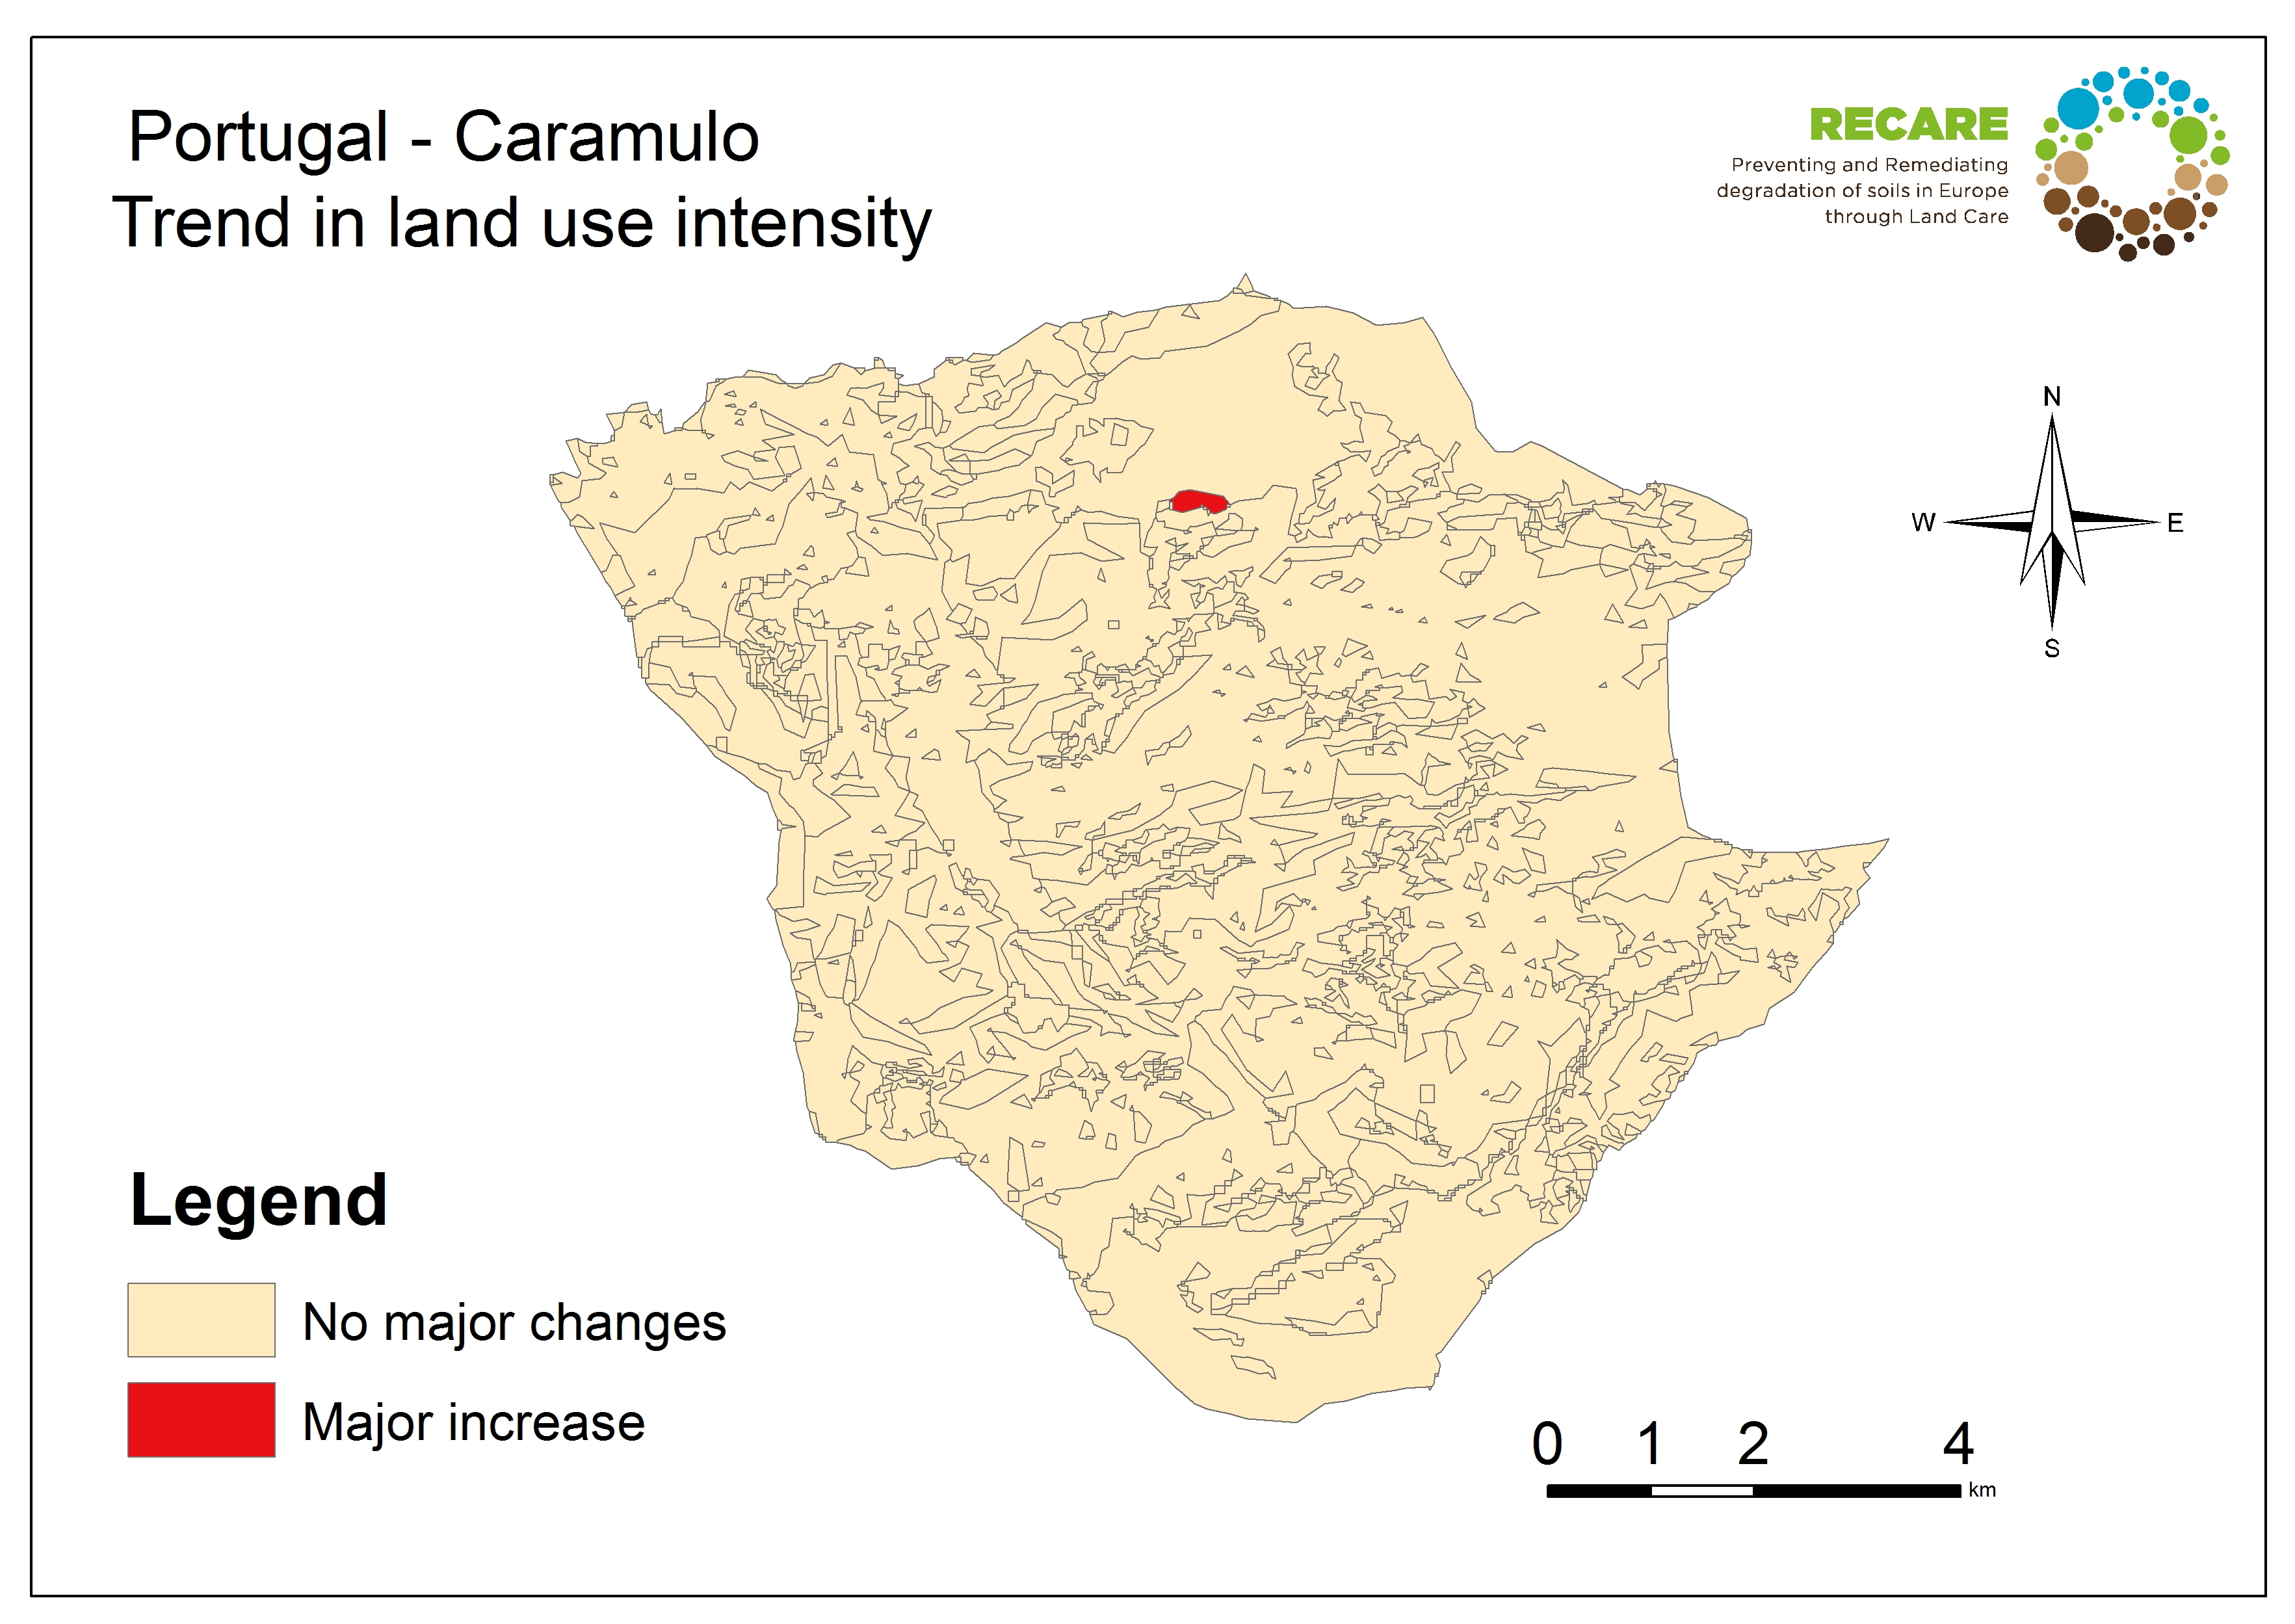 Portugal Caramulo trend in land use intensity